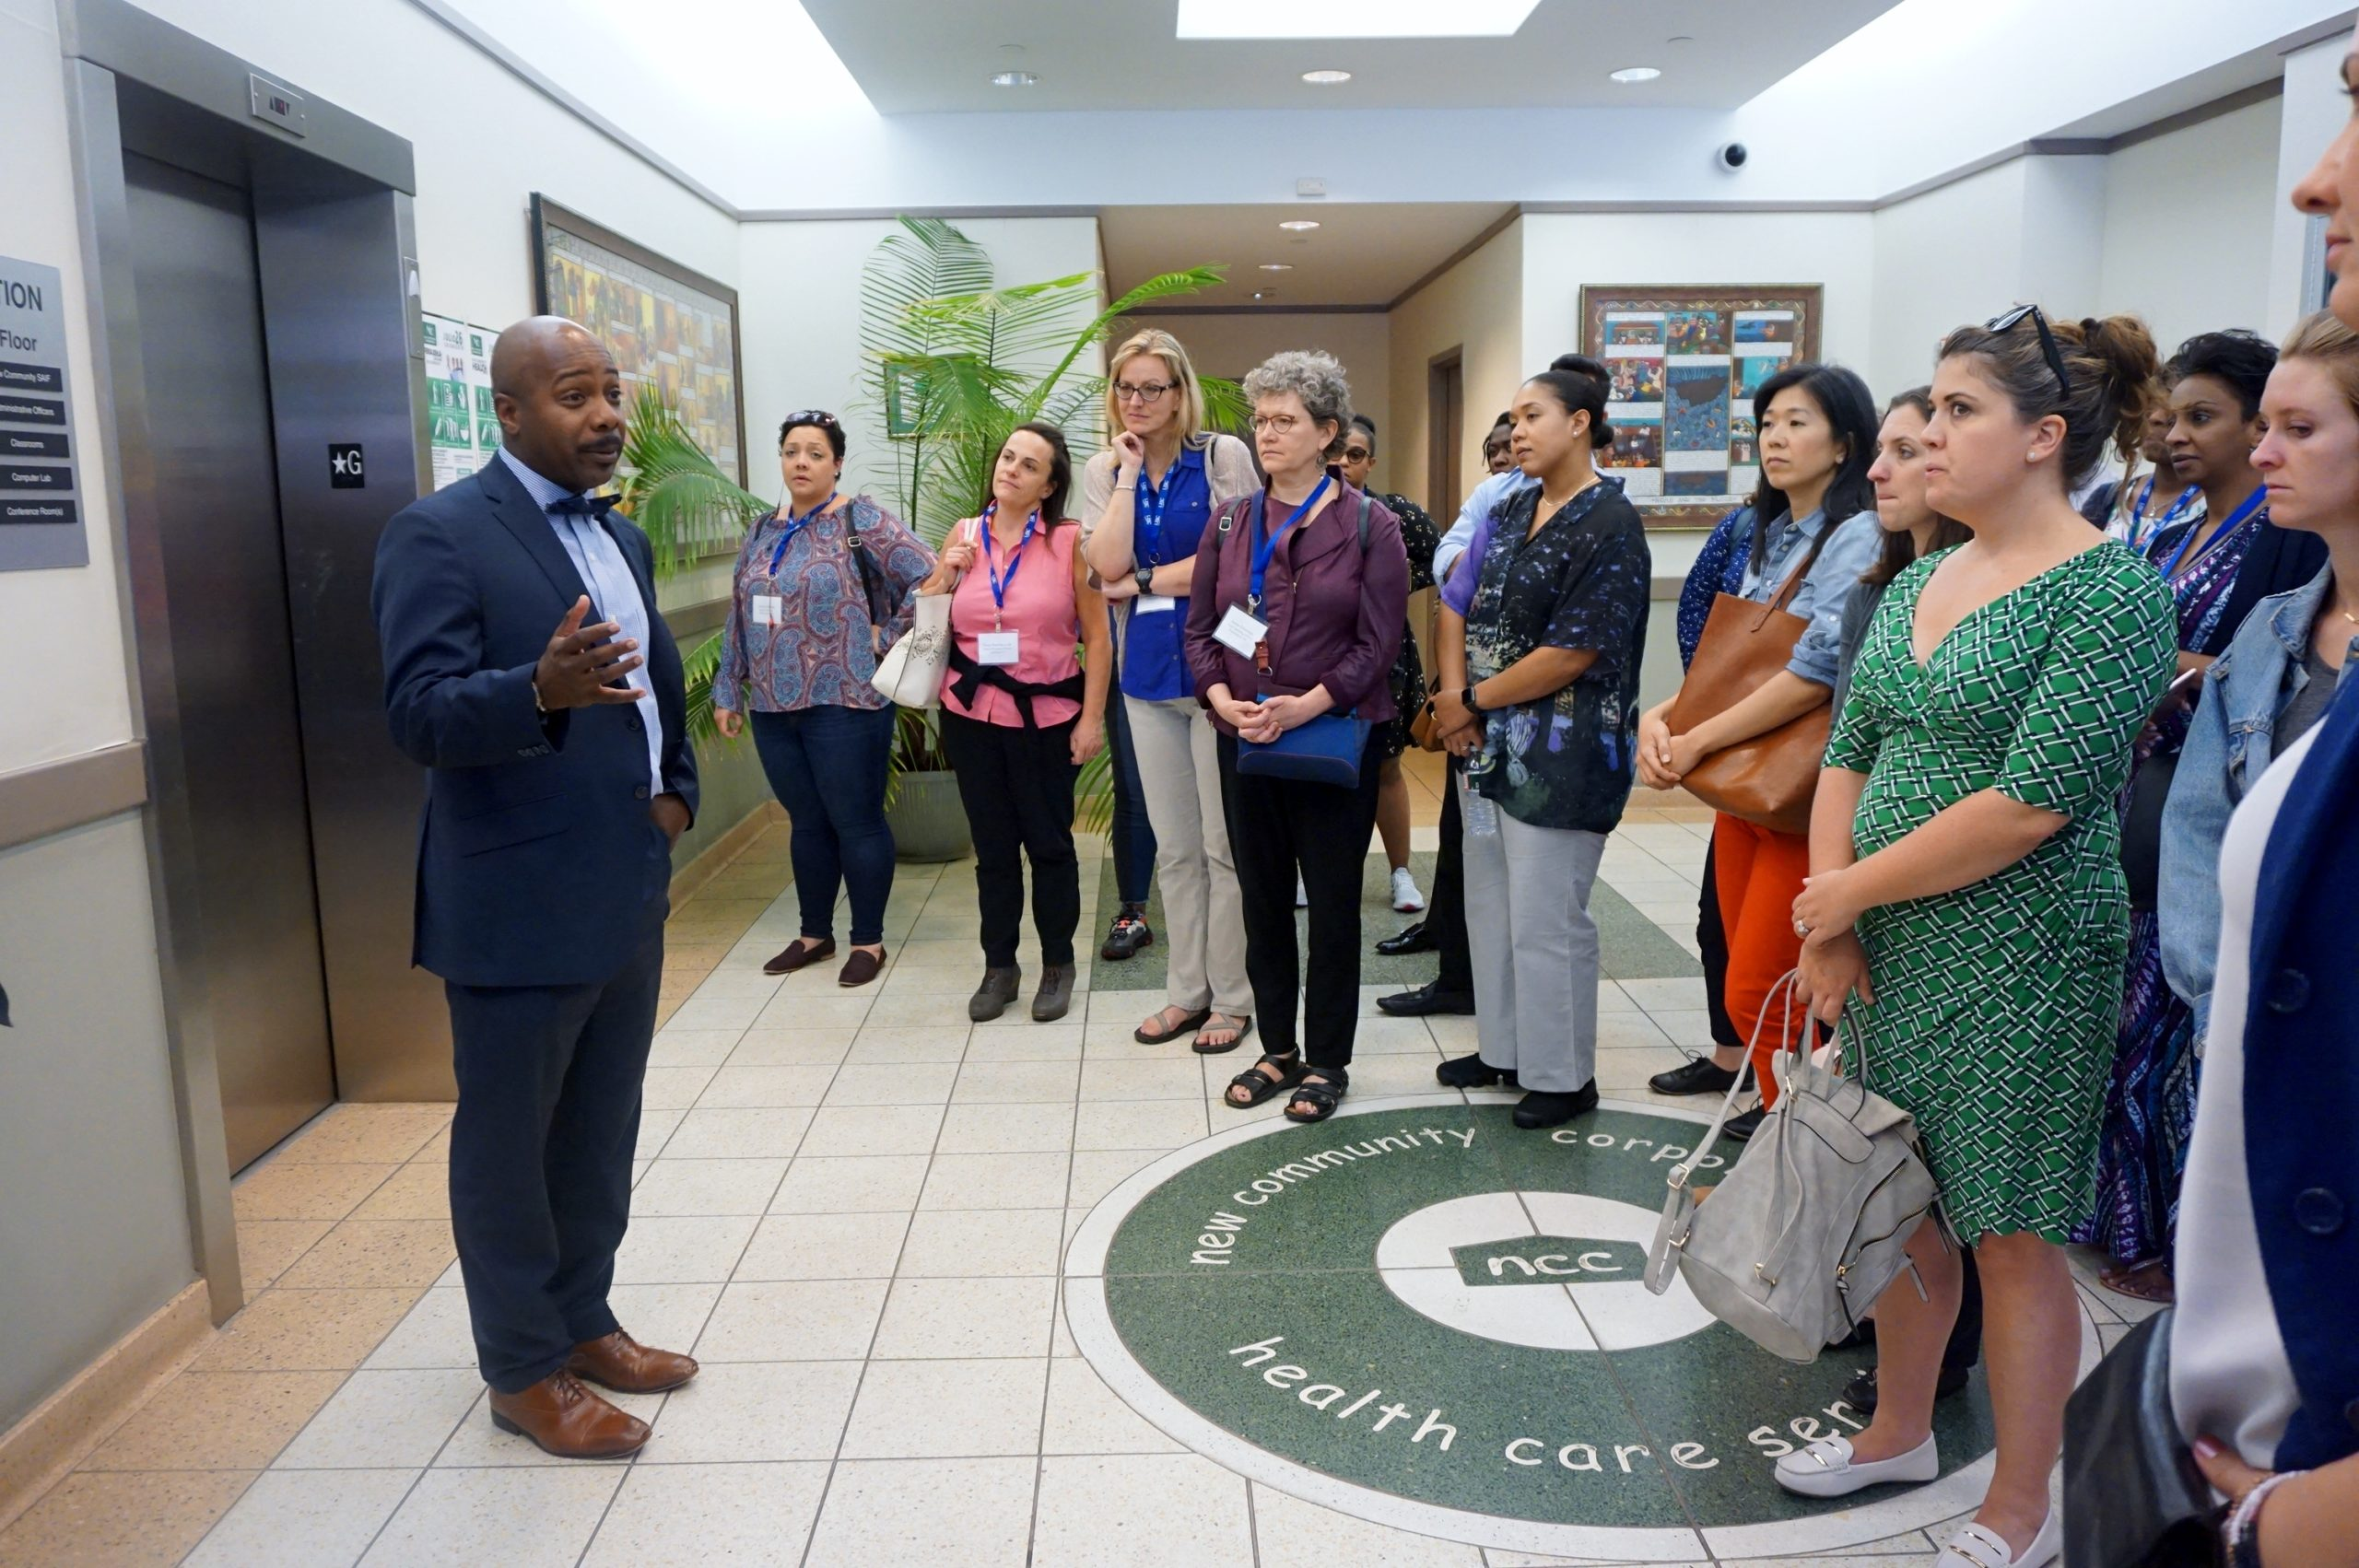 NCC Welcomes New LISC Employees